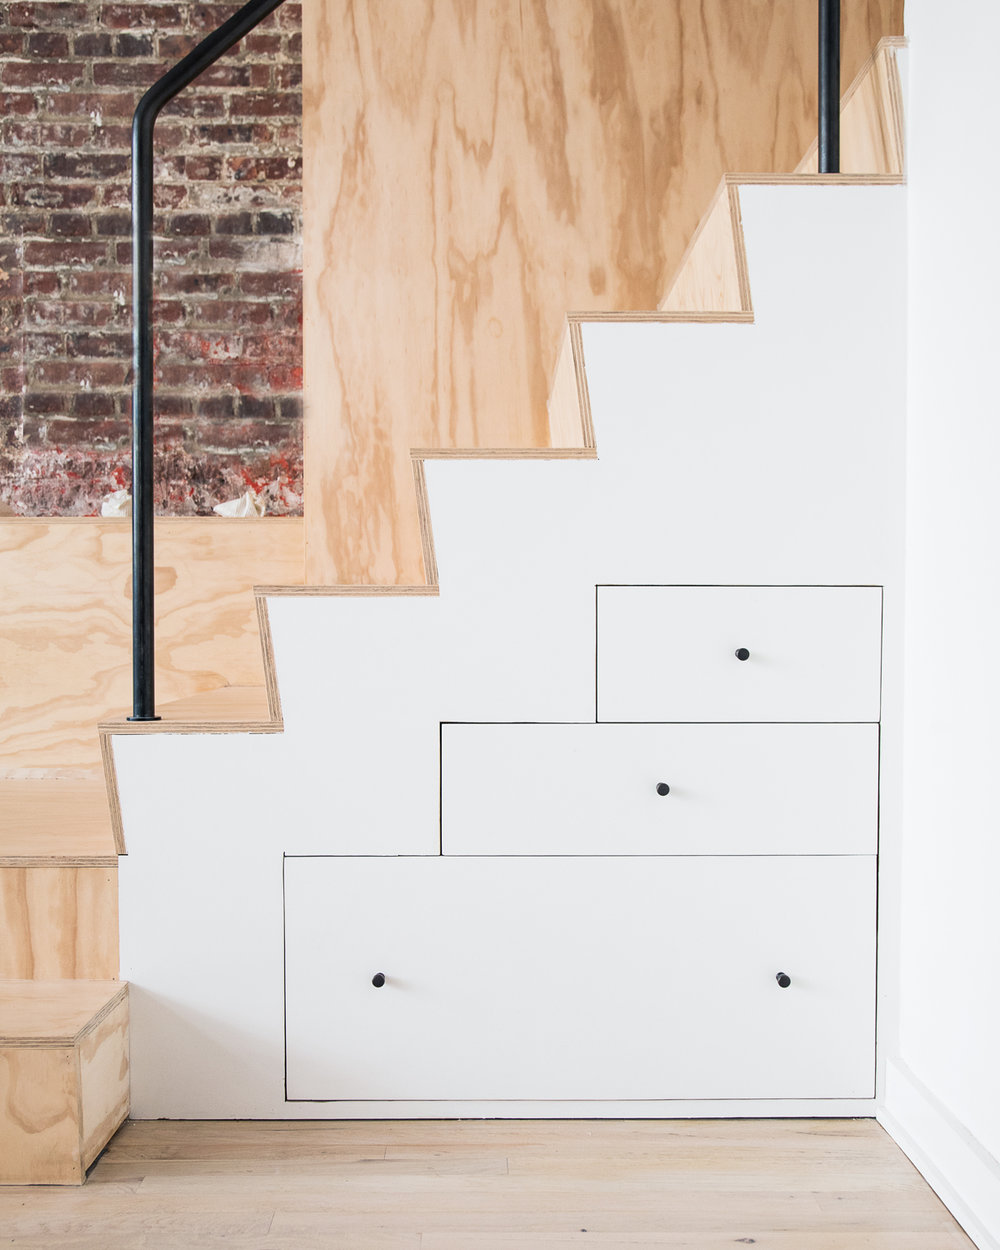 Wells Fargo Loft Stair Storage.jpg